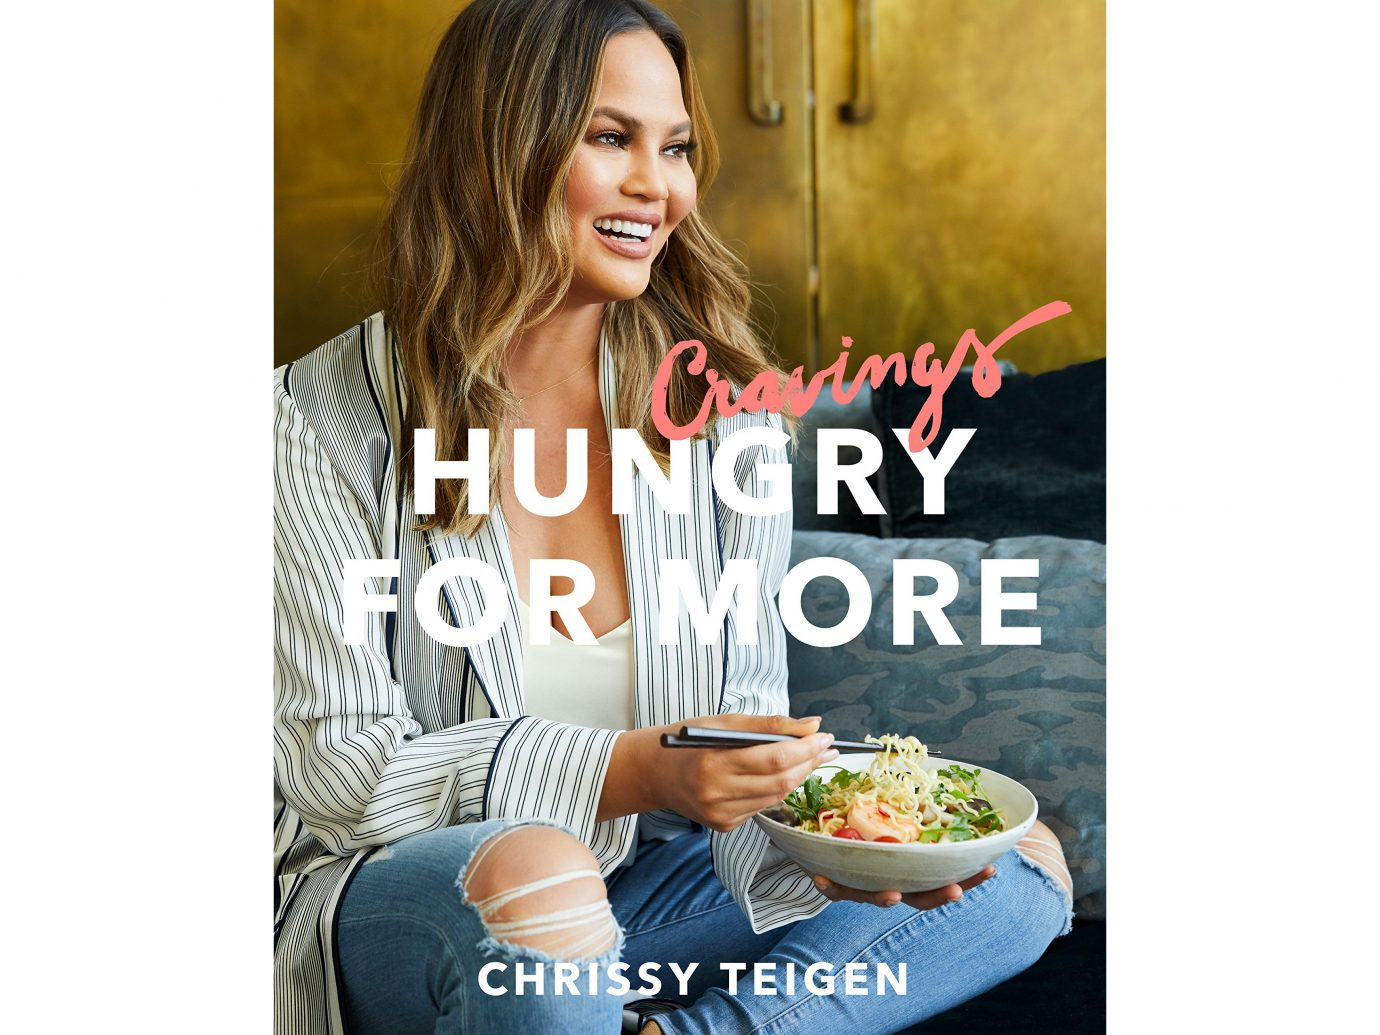 Chrissy Teigen Cookbook